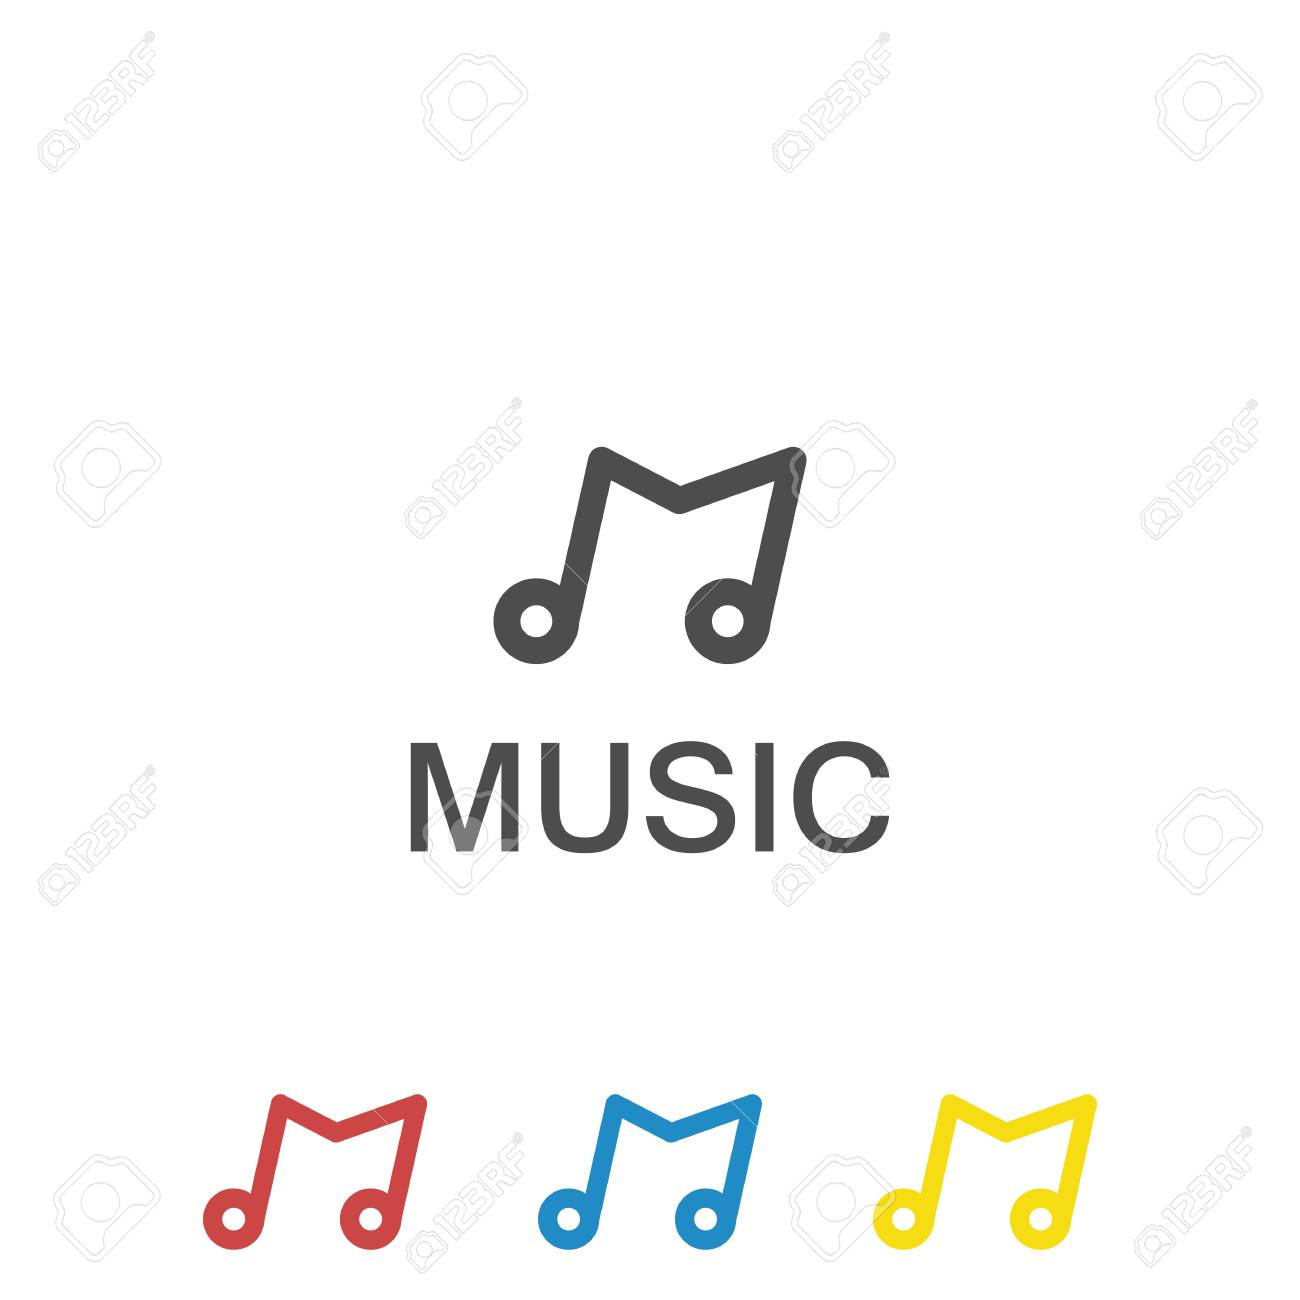 700c8f56f55a1 Initial letter M music logo template Stock Vector - 108329019